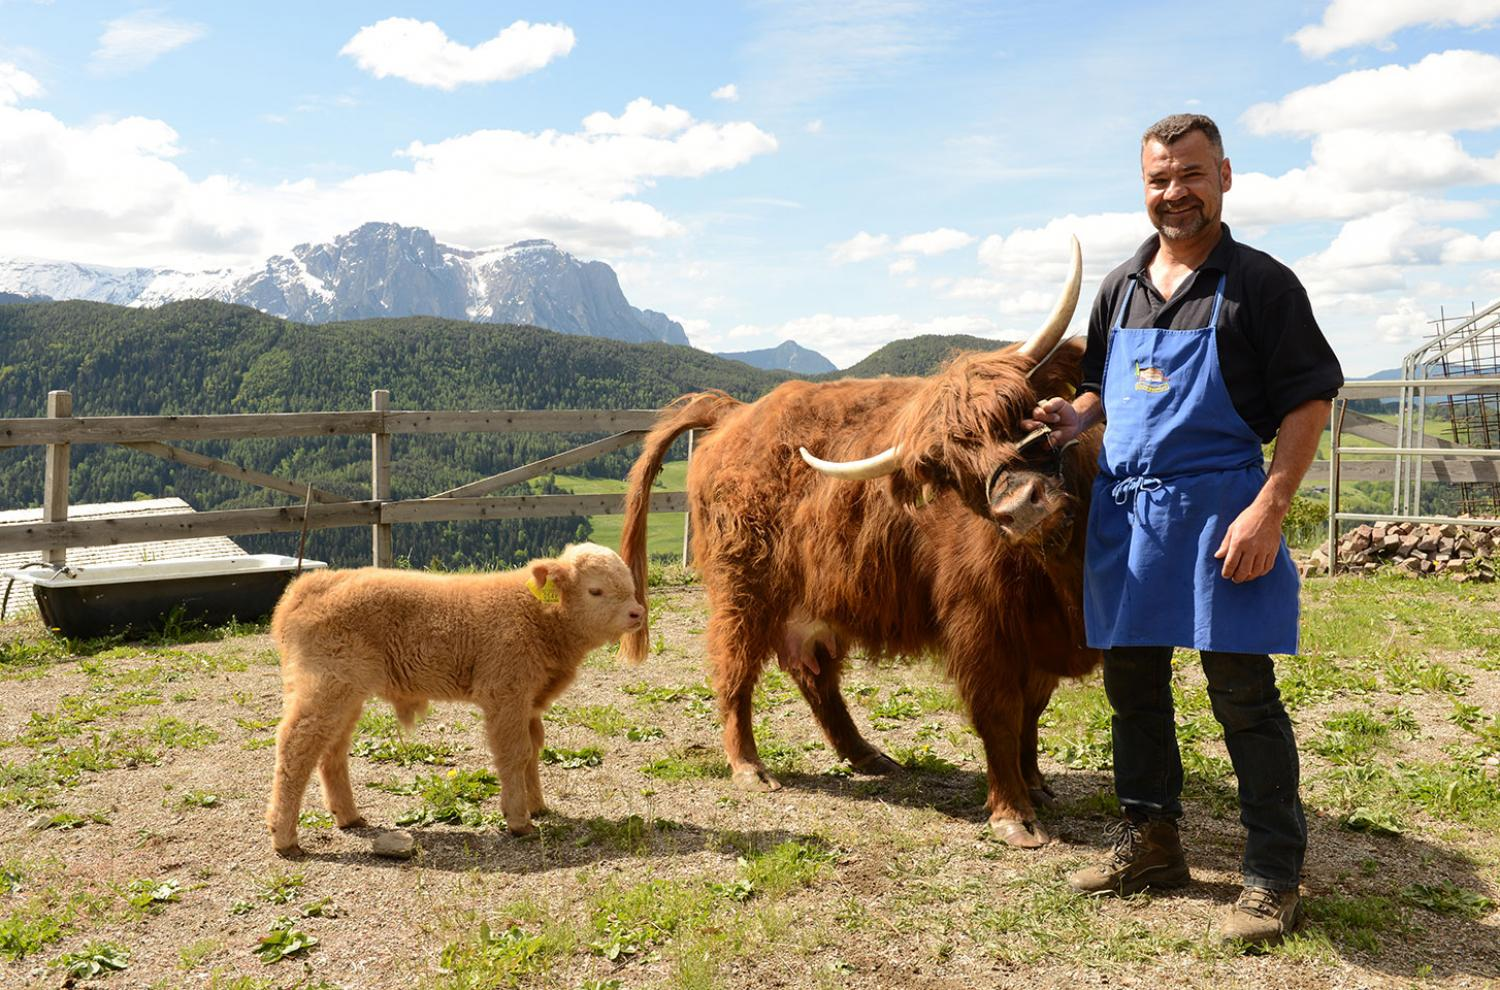 Our scottish Highland cattle